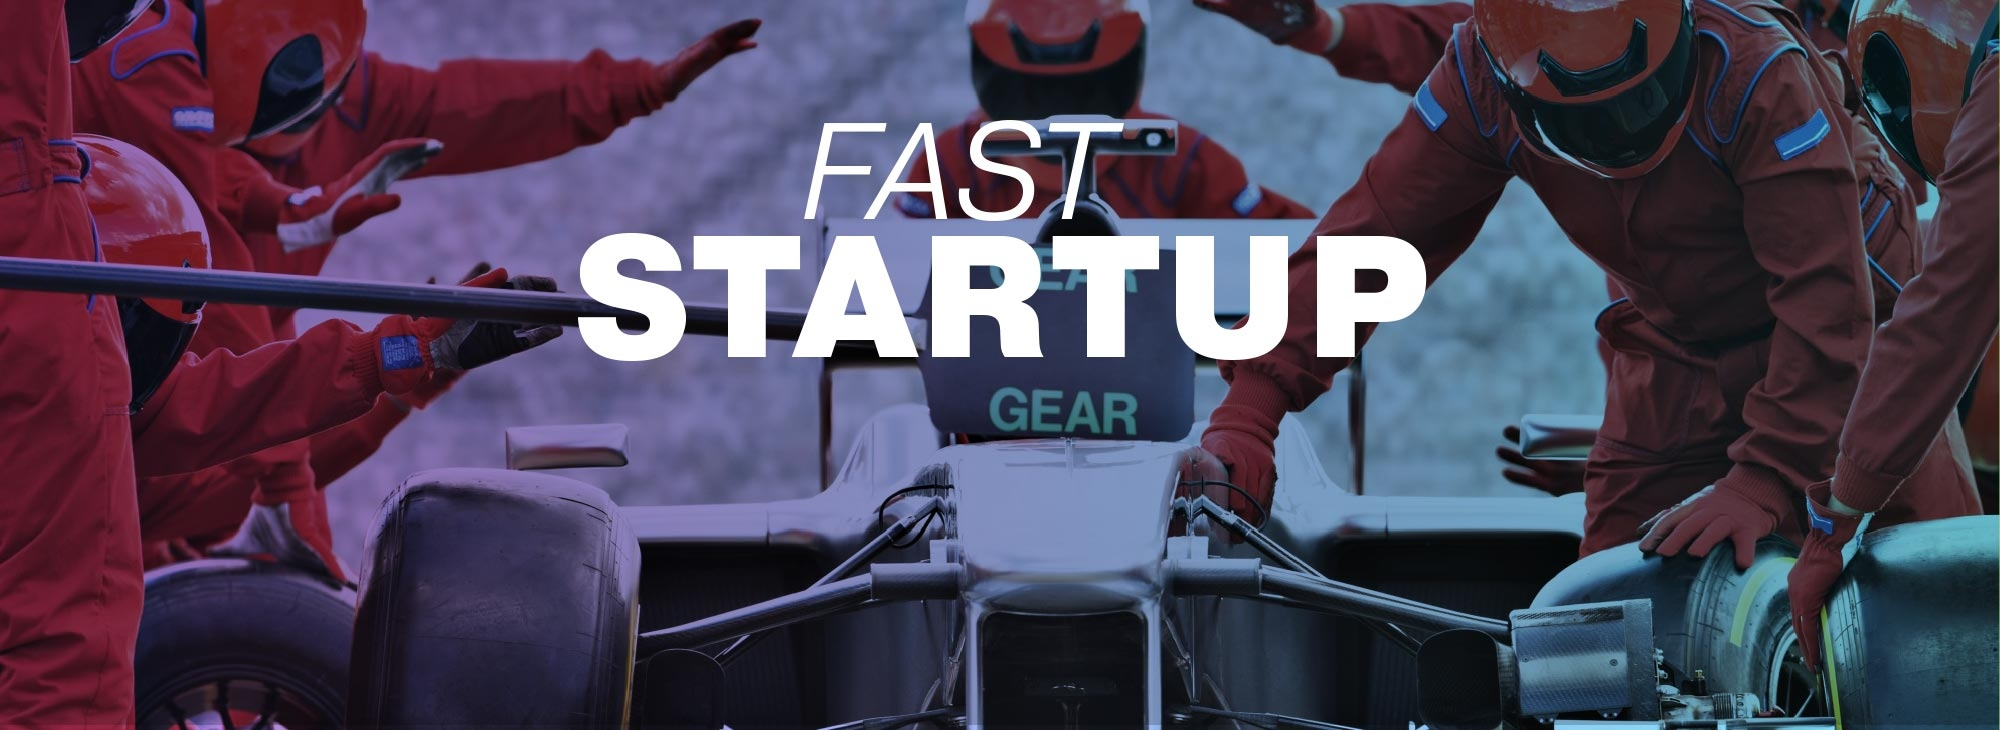 Fast Startup